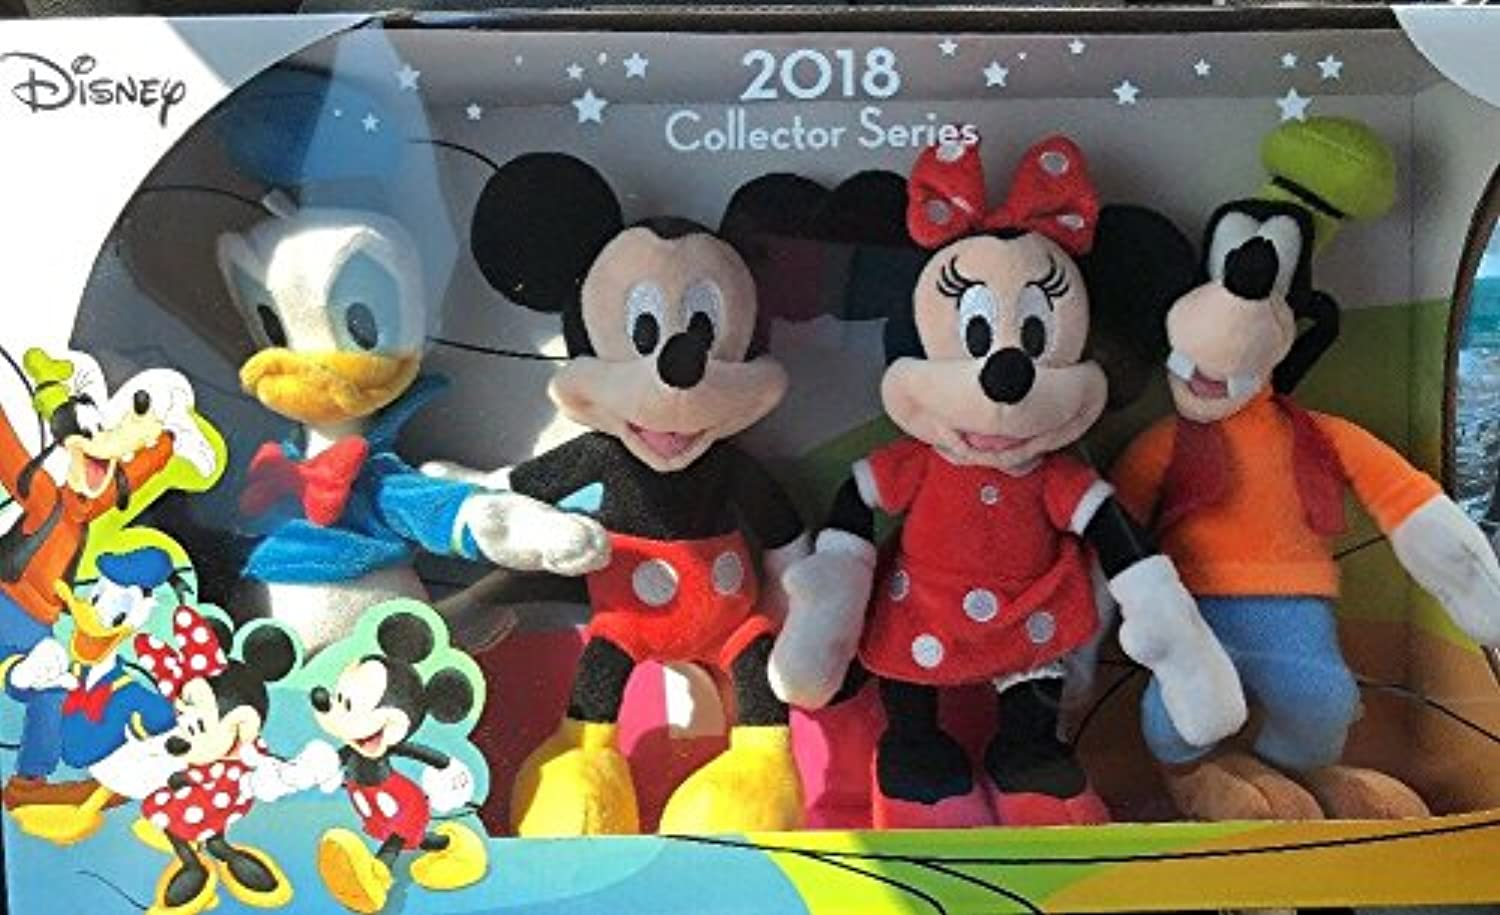 Disney 2018 Collector Series Character Stuffed Animals Mickey Minnie Donald and Goofy 9 inch stuffed